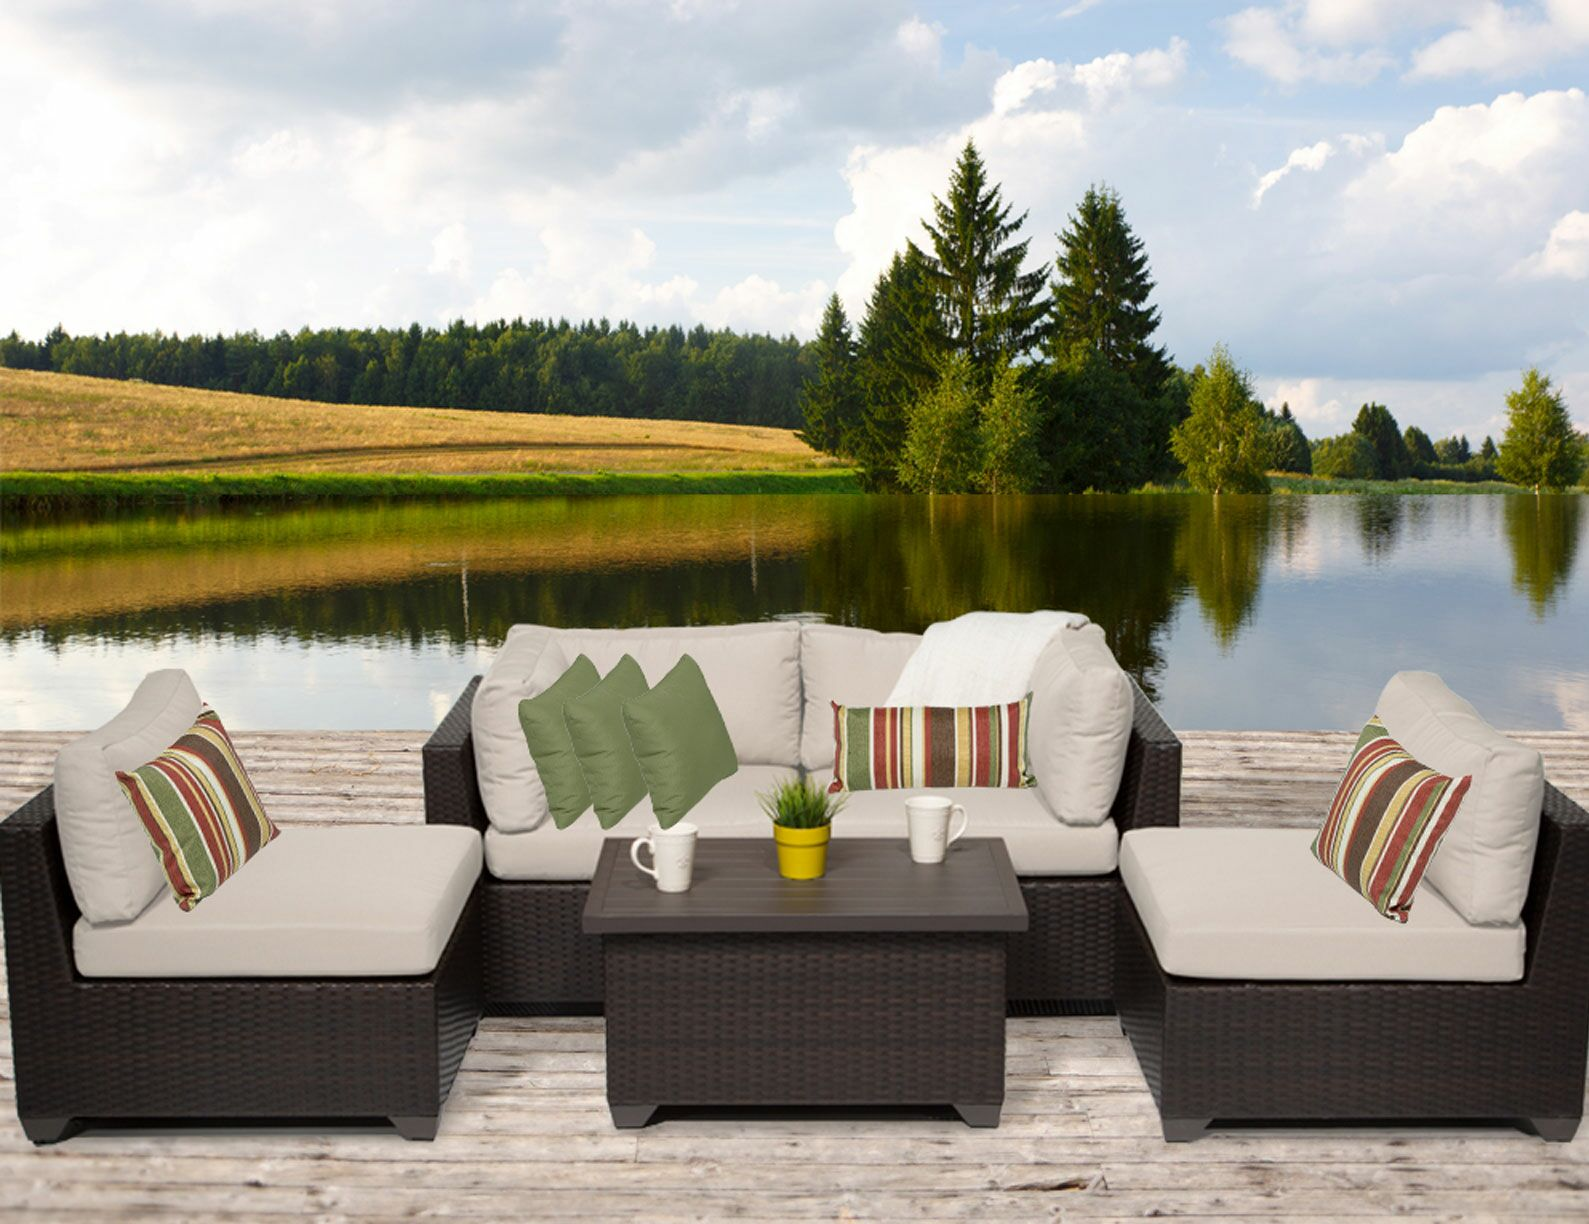 Belle 5 Piece Sofa Set with Cushions Color: Beige